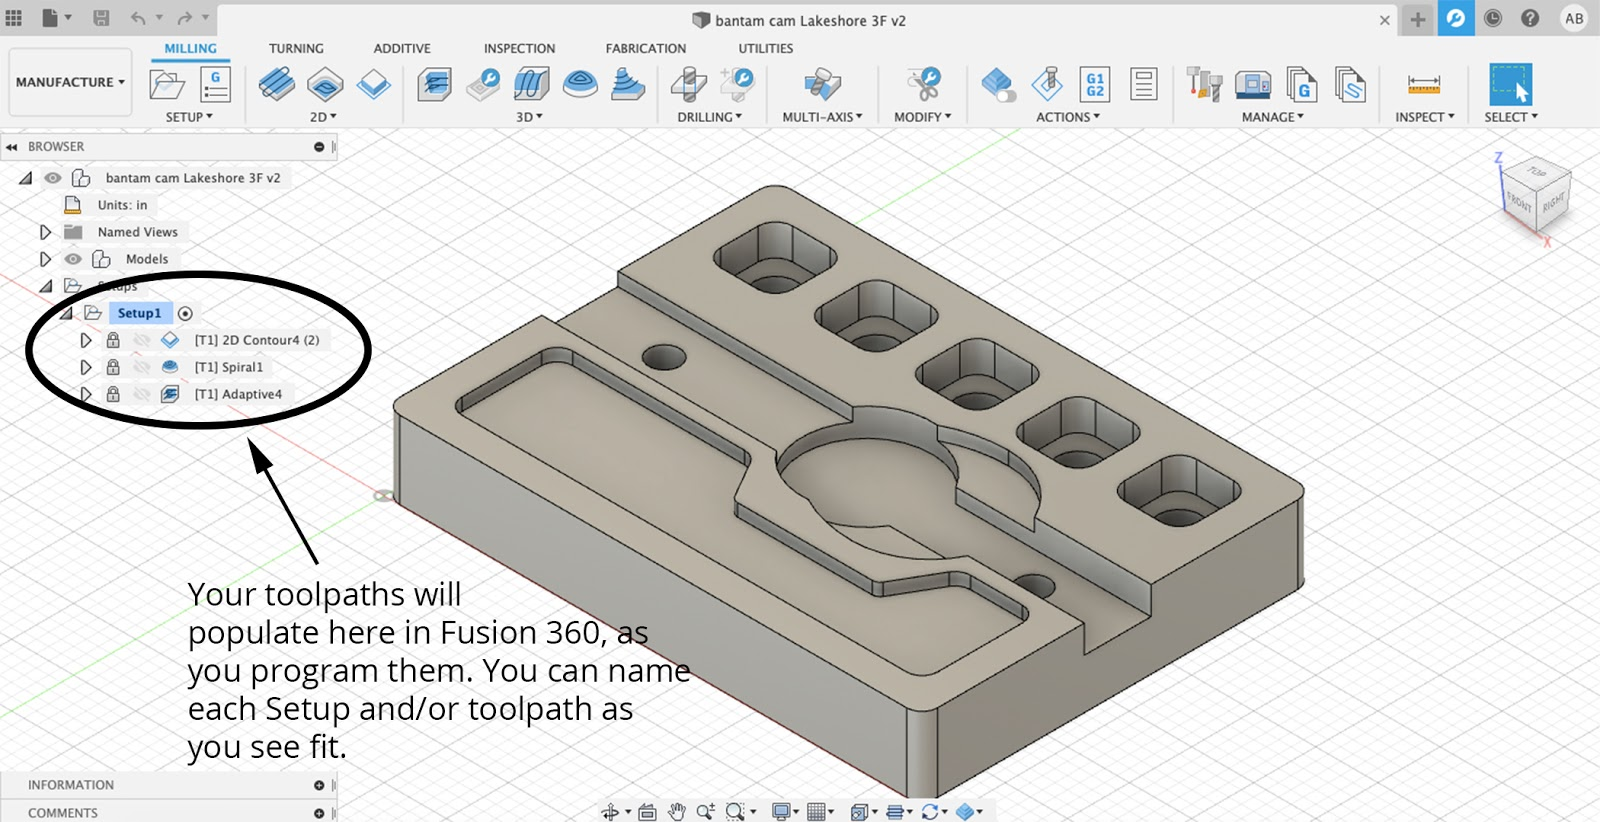 Toolpaths-in-Fusion-360.jpg